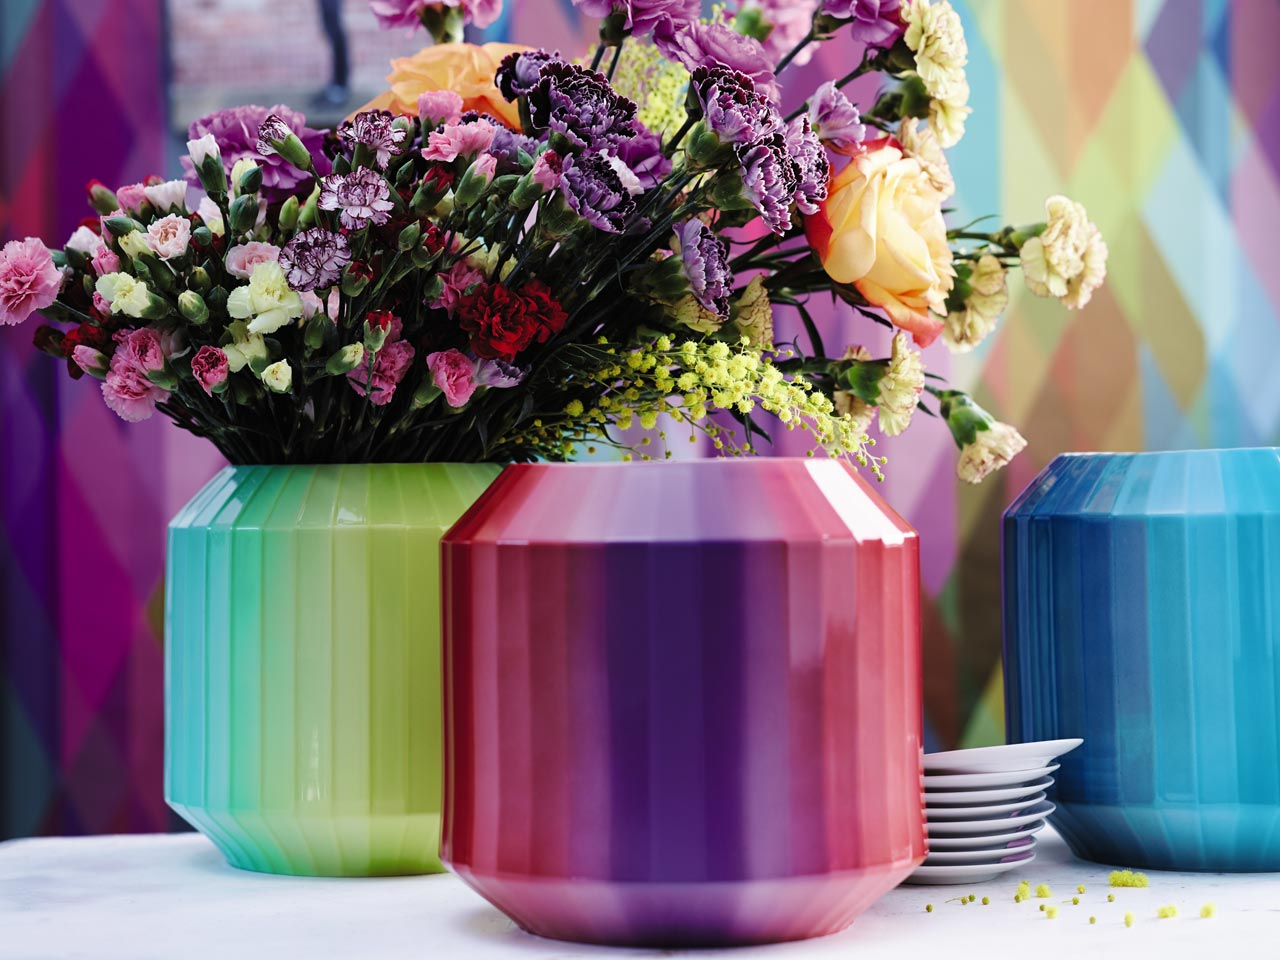 Colorful Rosenthal Hot Spot Vases with flowers in front of colorful background.